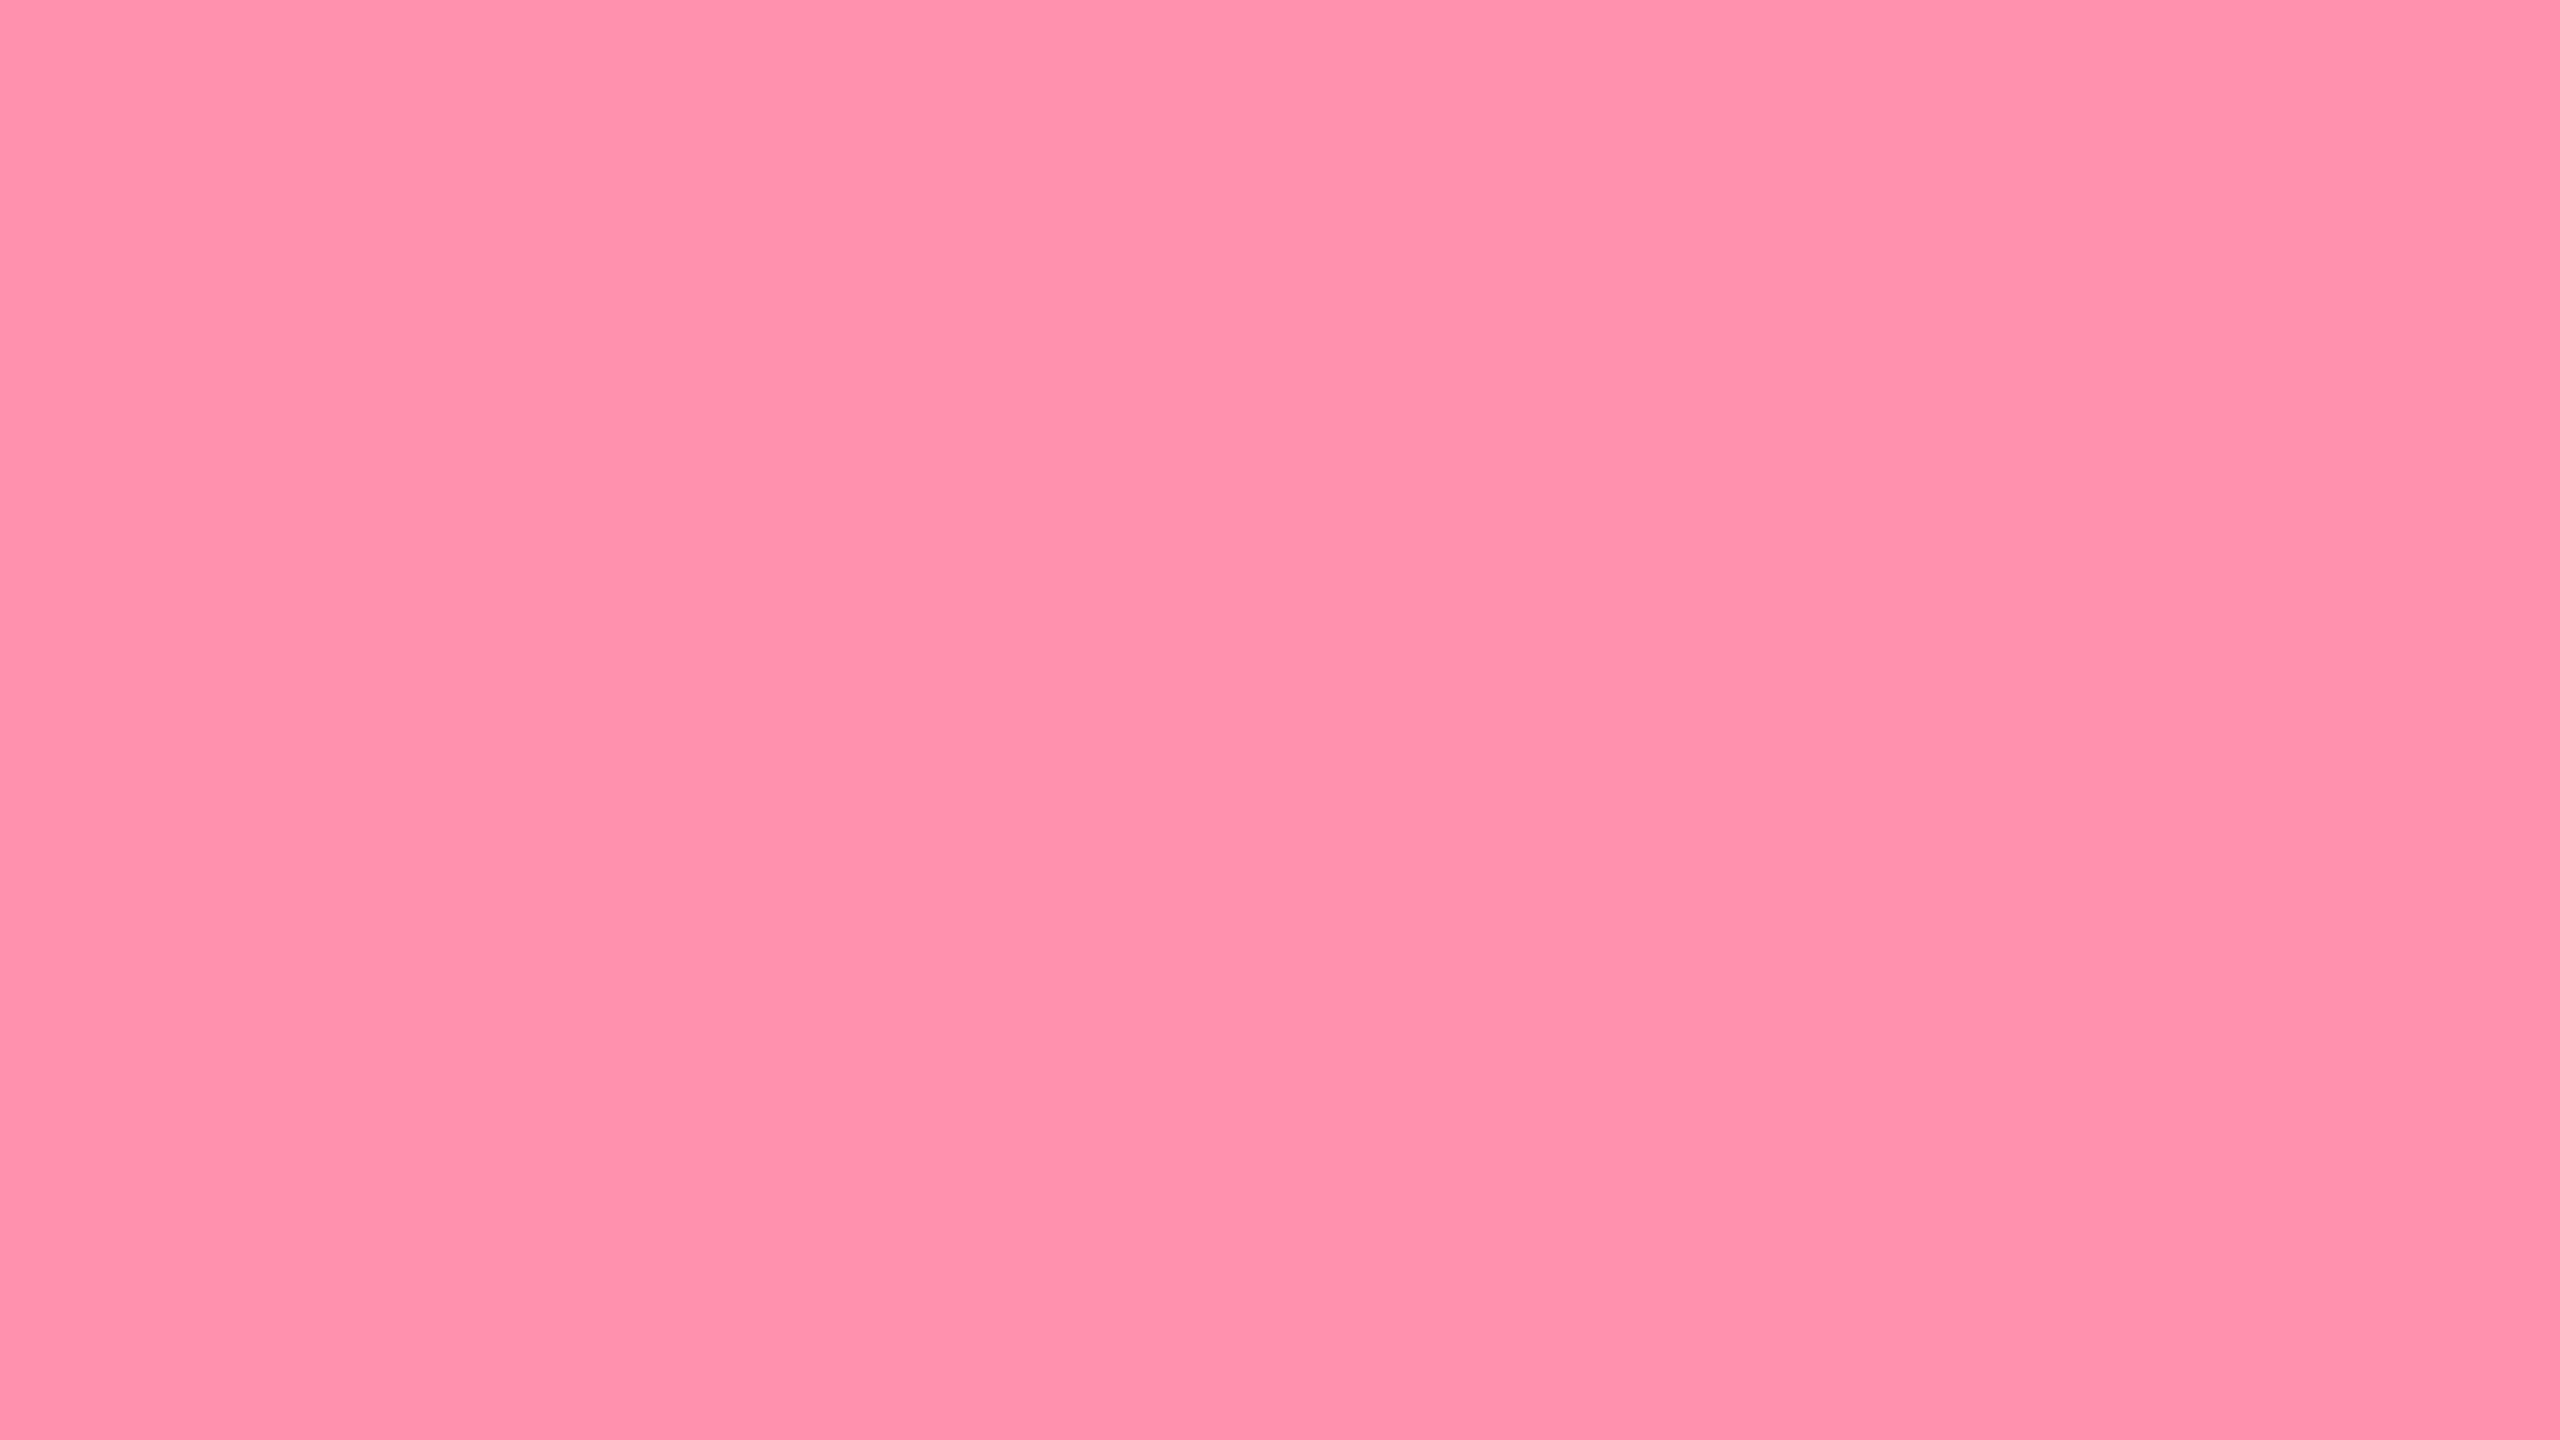 2560x1440 Schauss Pink Solid Color Background